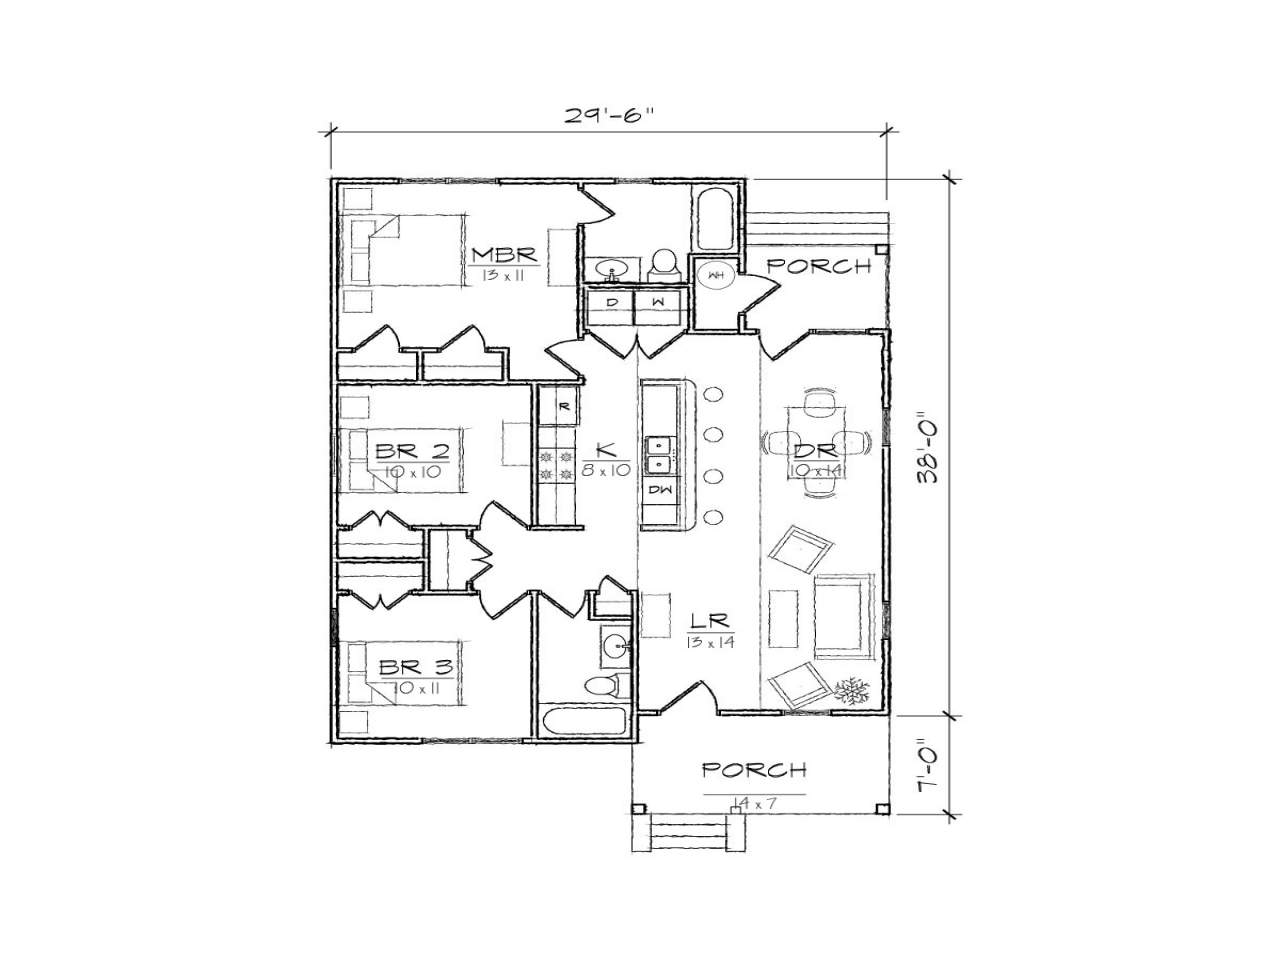 Small bungalow house floor plans modern bungalow house for Floor plan bungalow house philippines